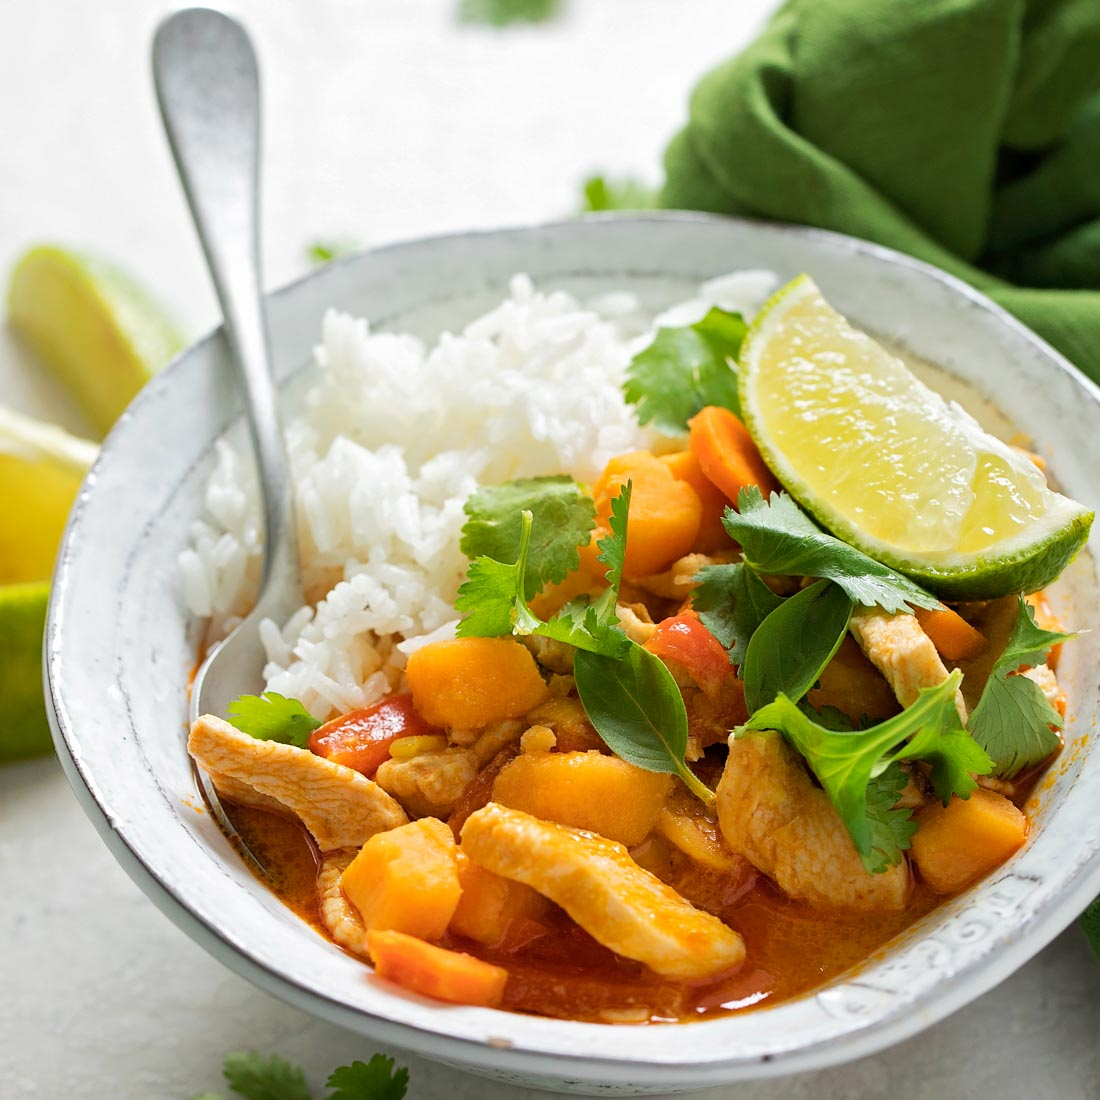 Red Curry chicken with veggies and rice in bowl